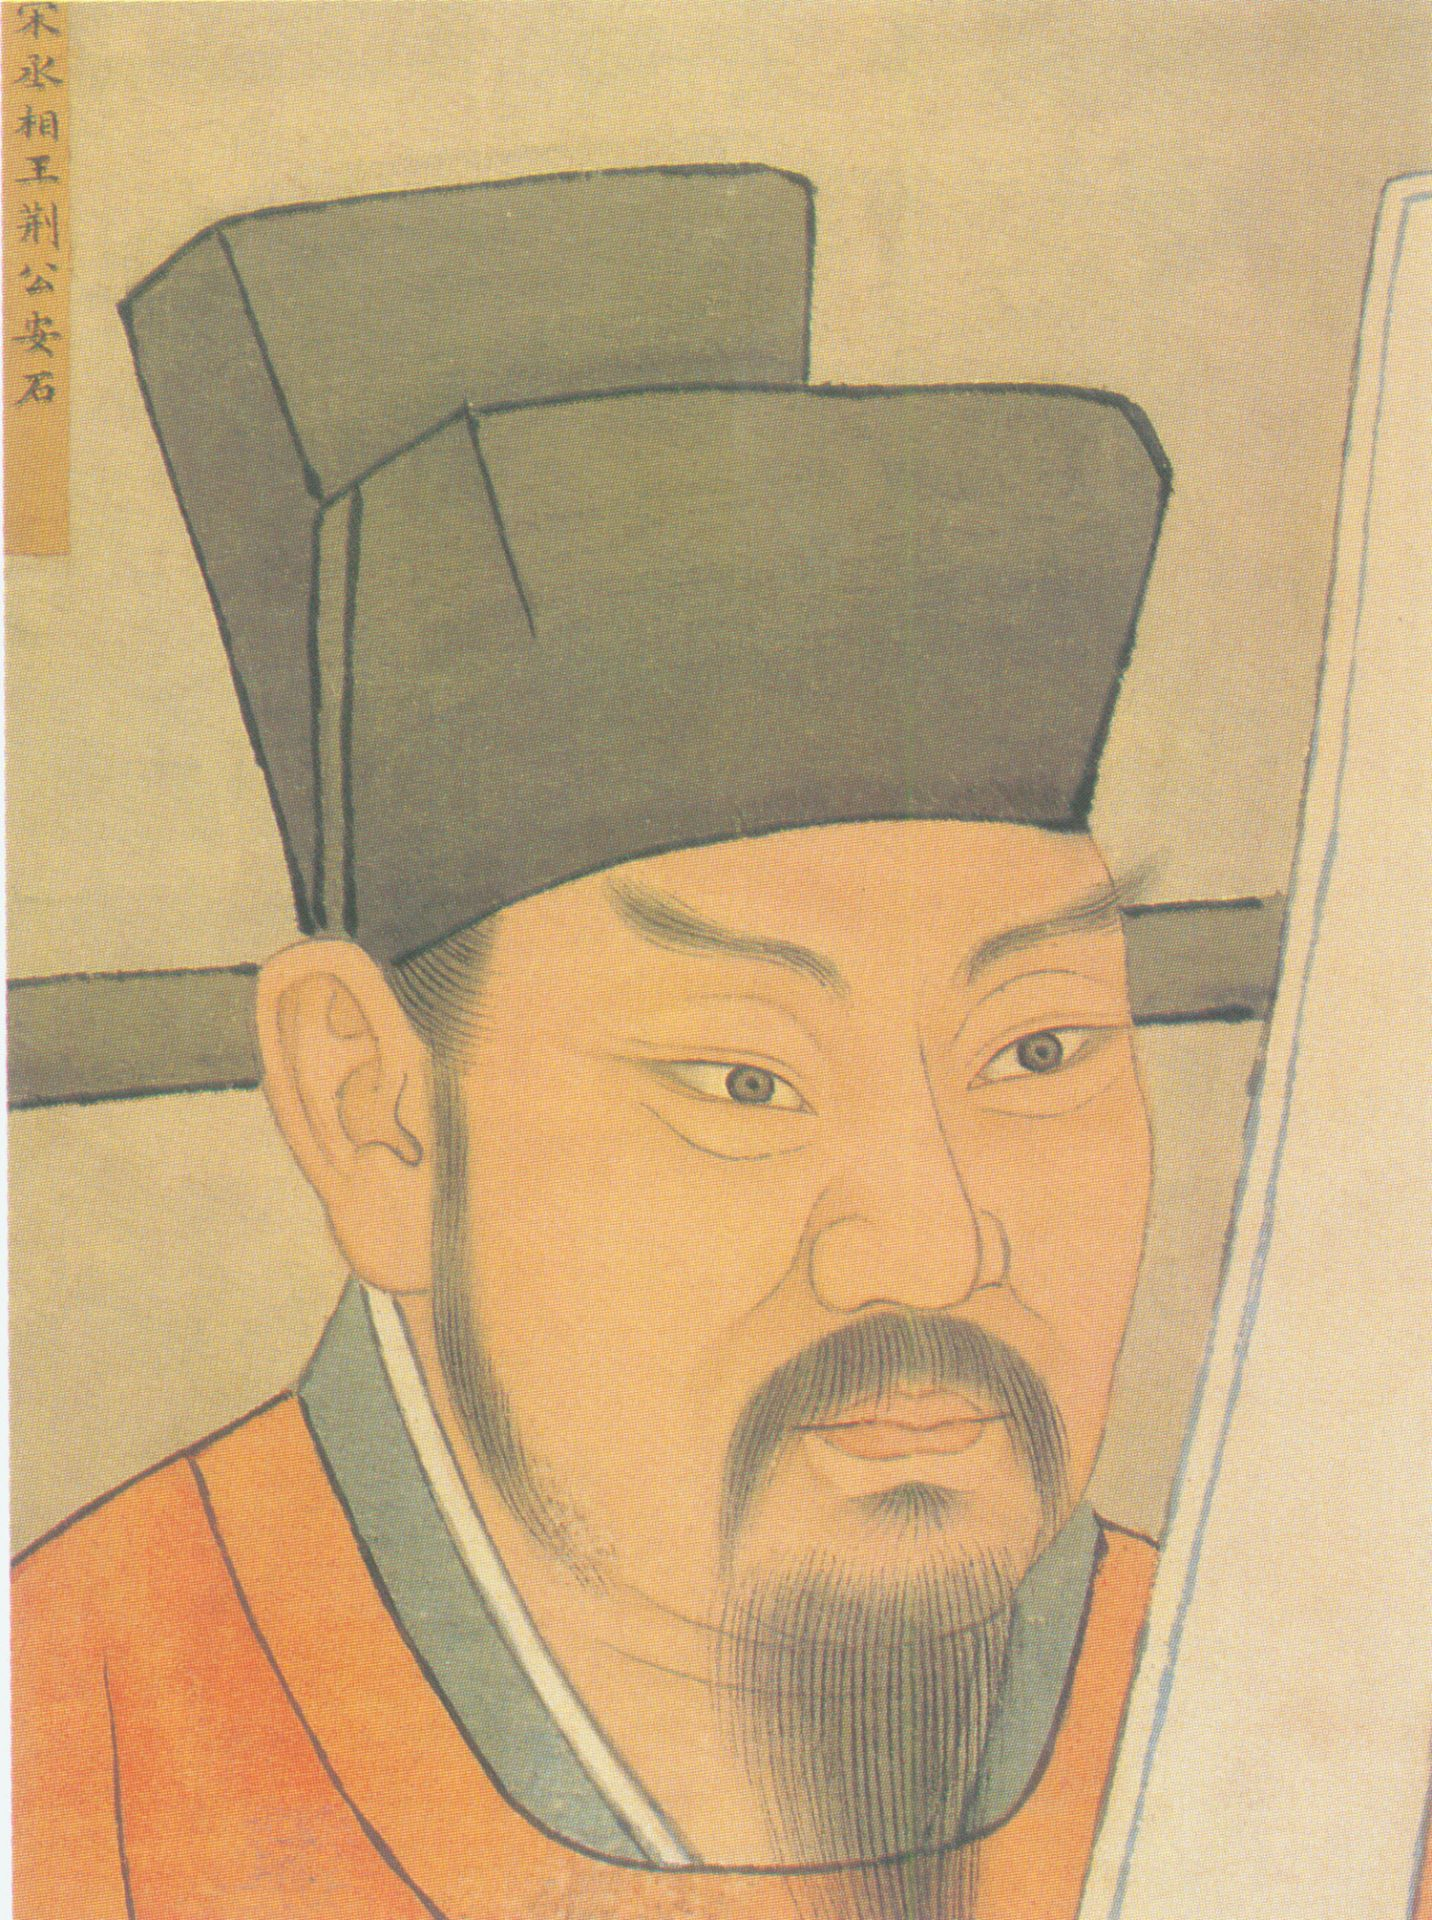 """Wang Anshi (1021-1086) was a Chinese economist, statesman, chancellor and poet of the Song Dynasty who attempted major and controversial socioeconomic reforms known as the """"New Policies"""". (Image: wikimedia / CC0 1.0)"""